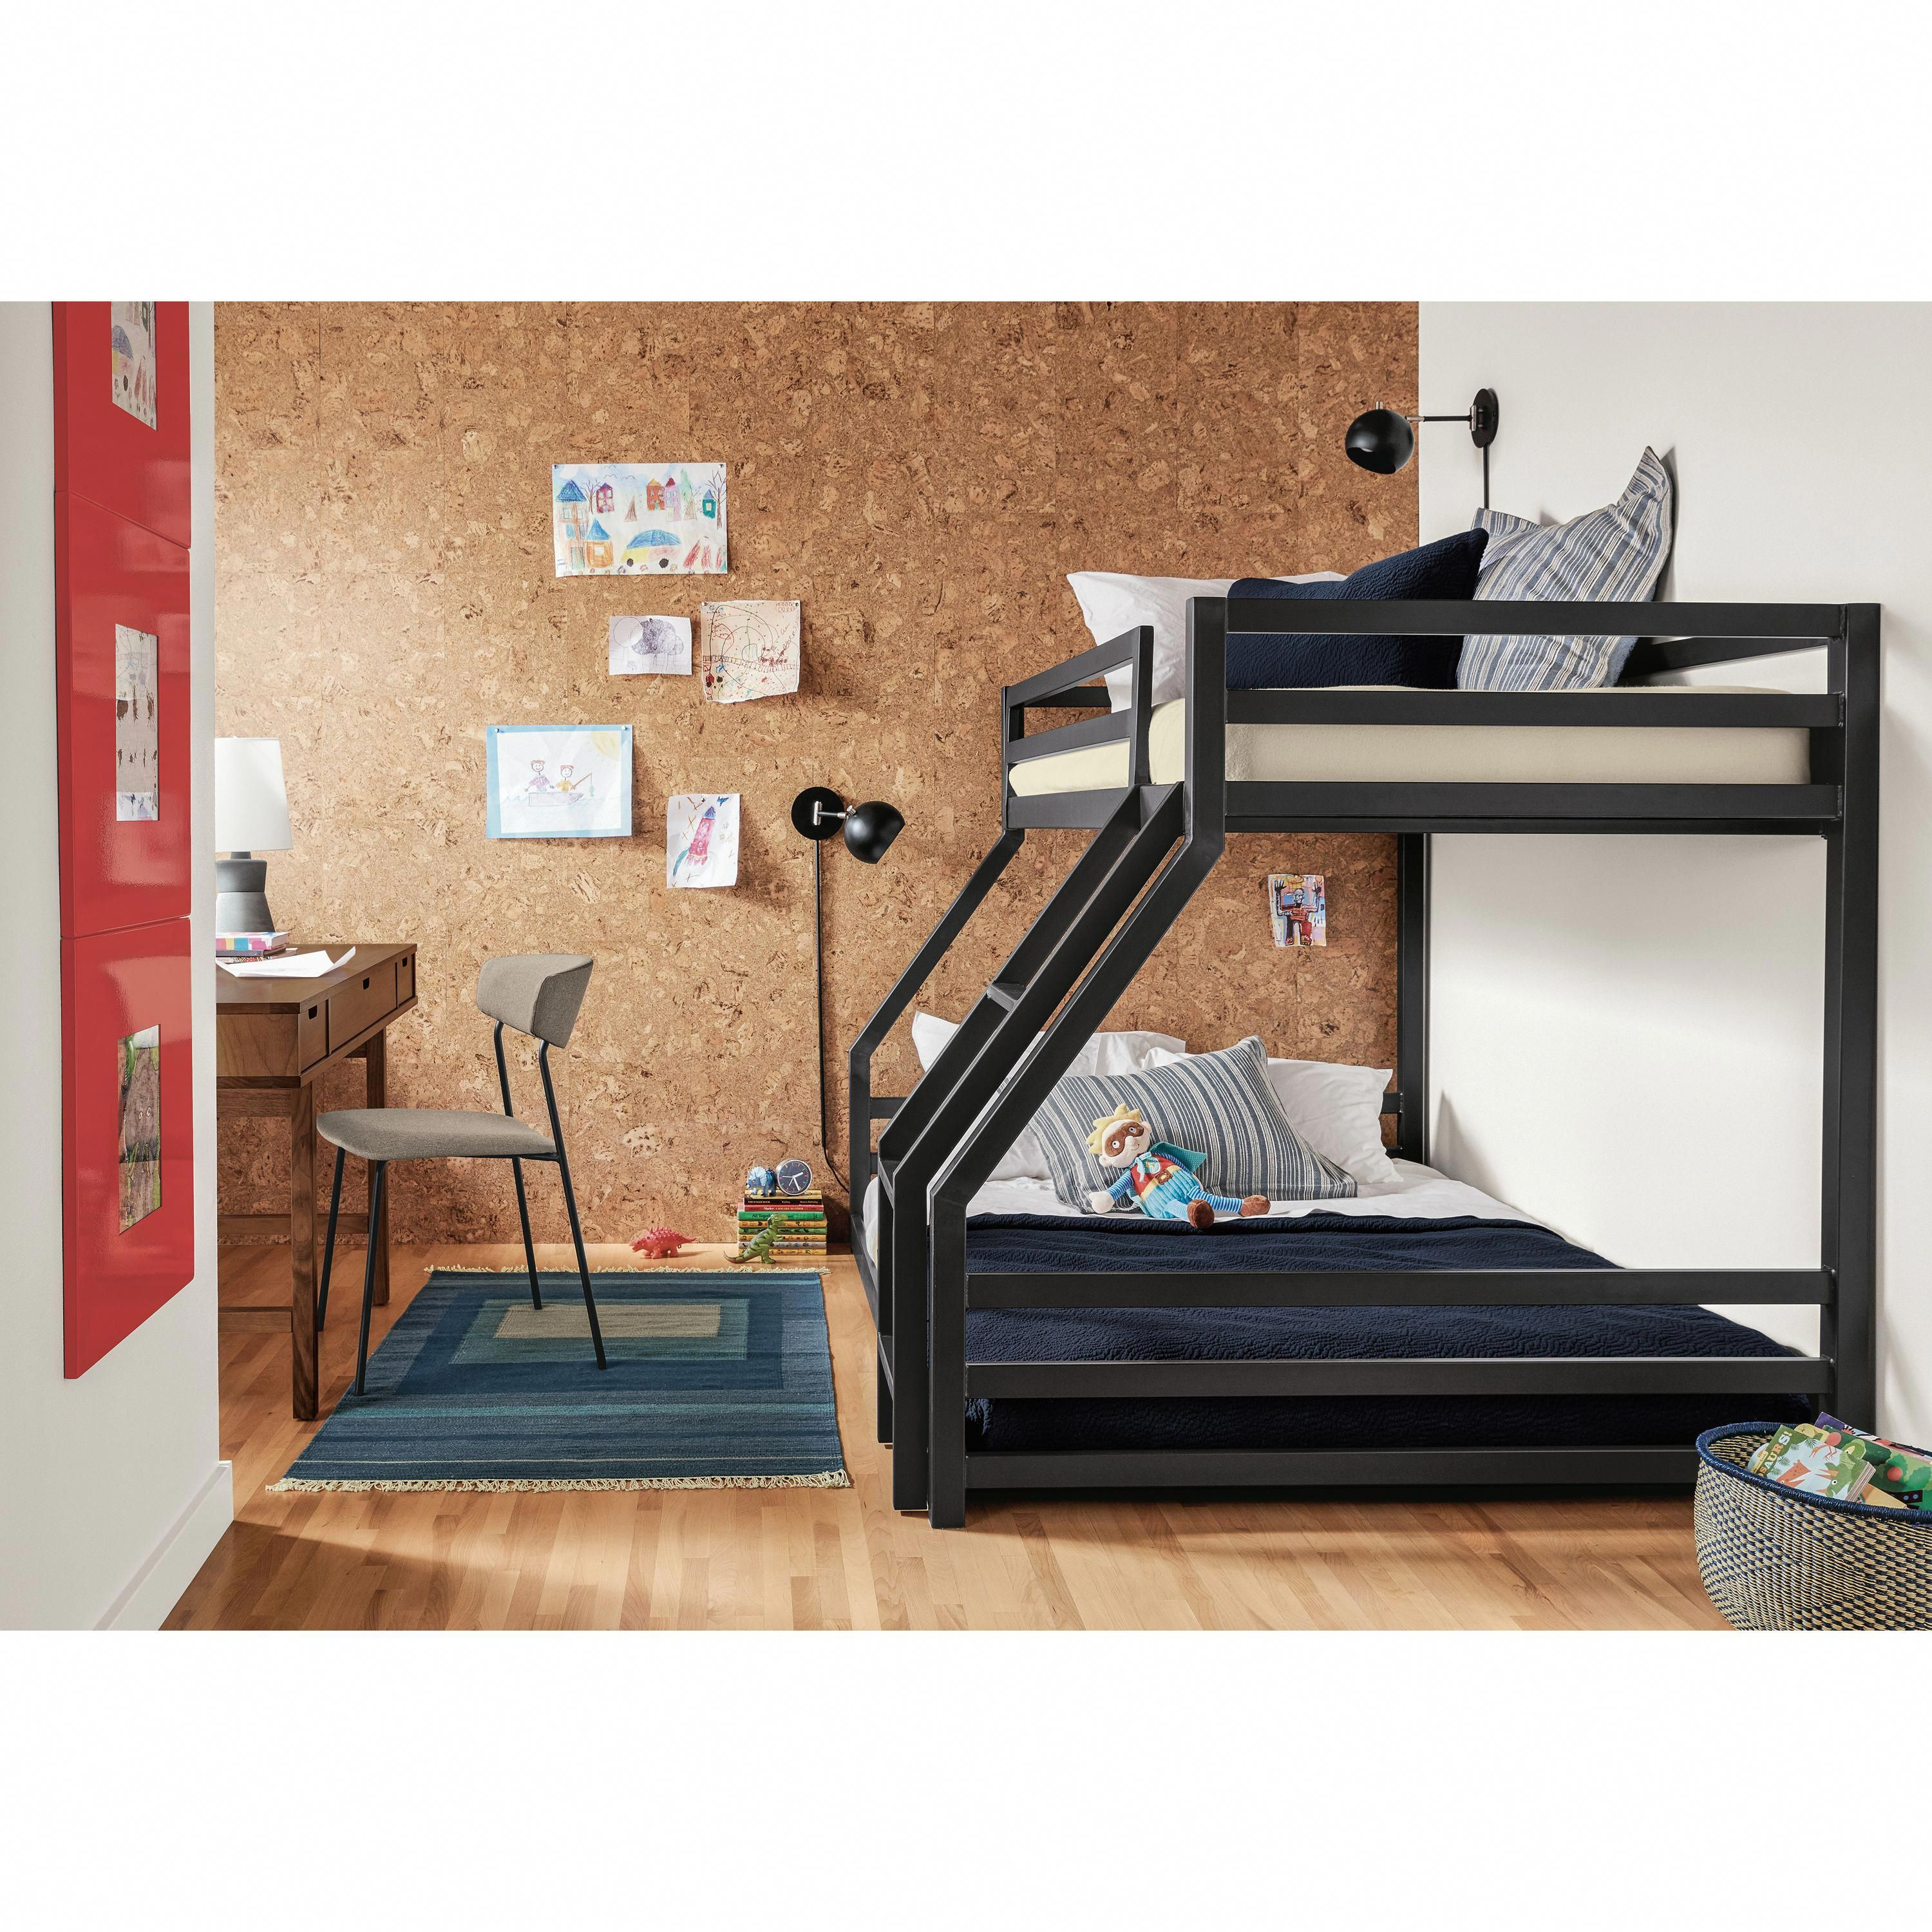 Room Board Fort Bunk Beds In Colors Modernbunkbeds Modern Bunk Beds In 2018 Pinterest Bunk Beds Bed And Modern Bunk Beds